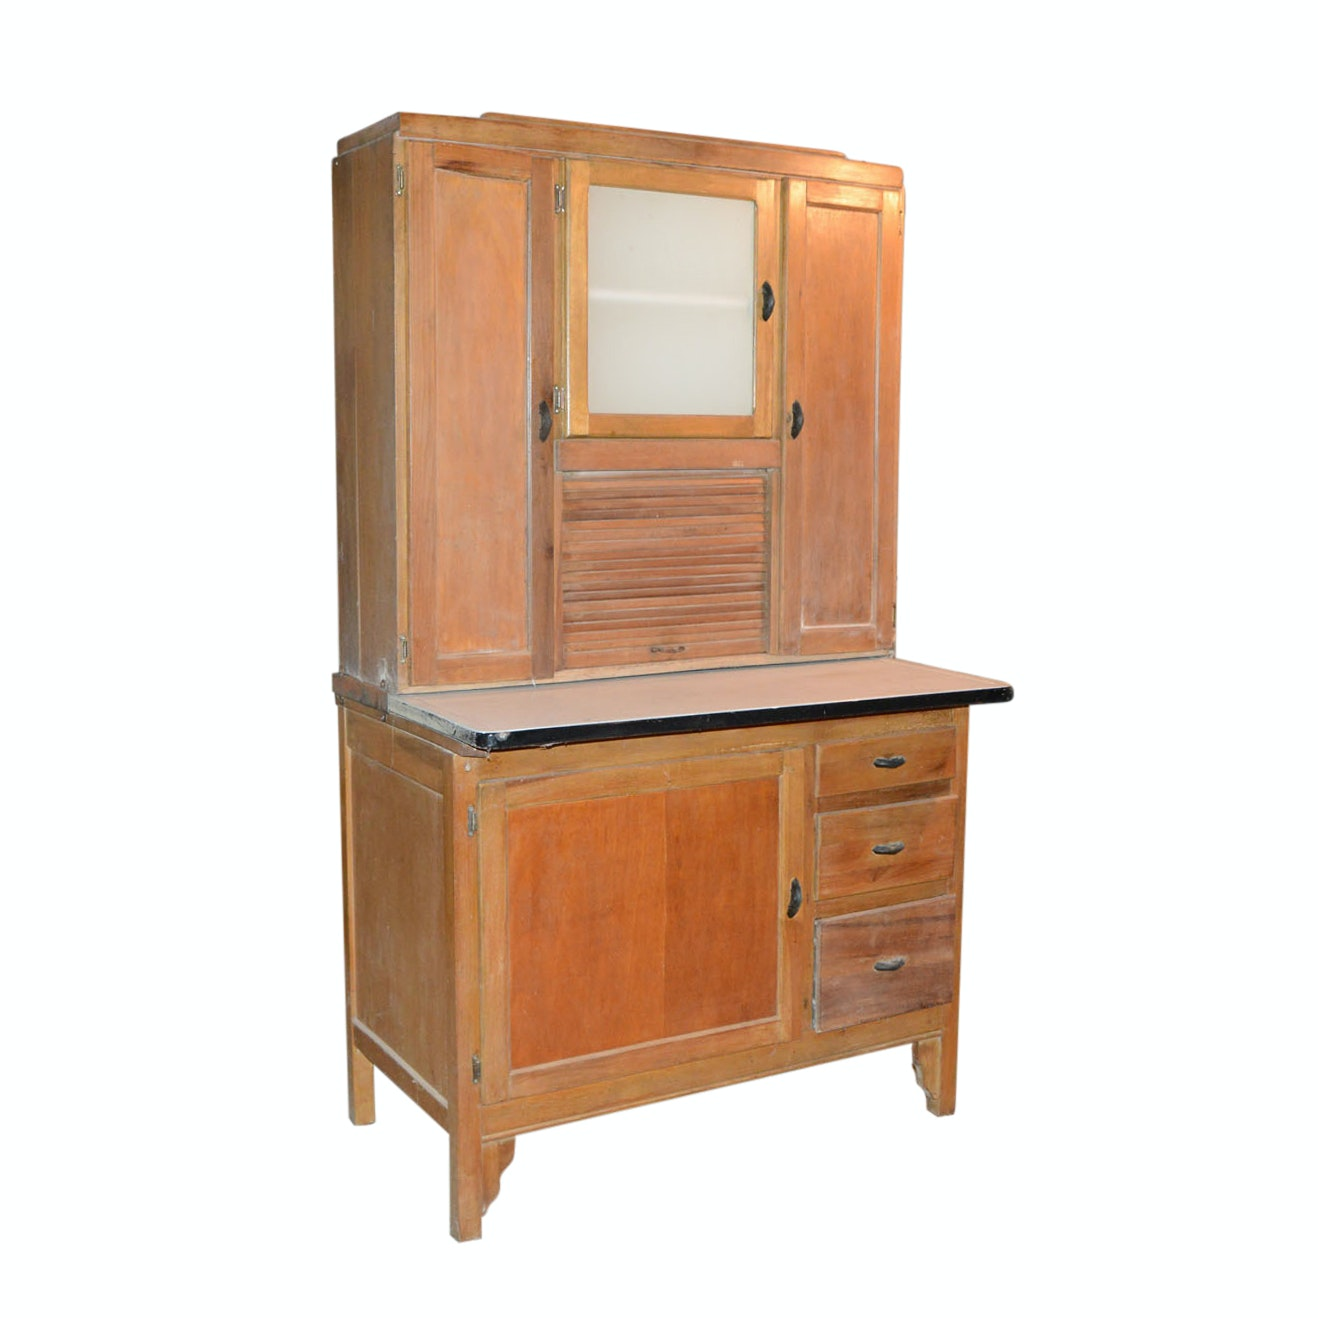 Vintage Hoosier Cabinet from Marsh Funiture Company